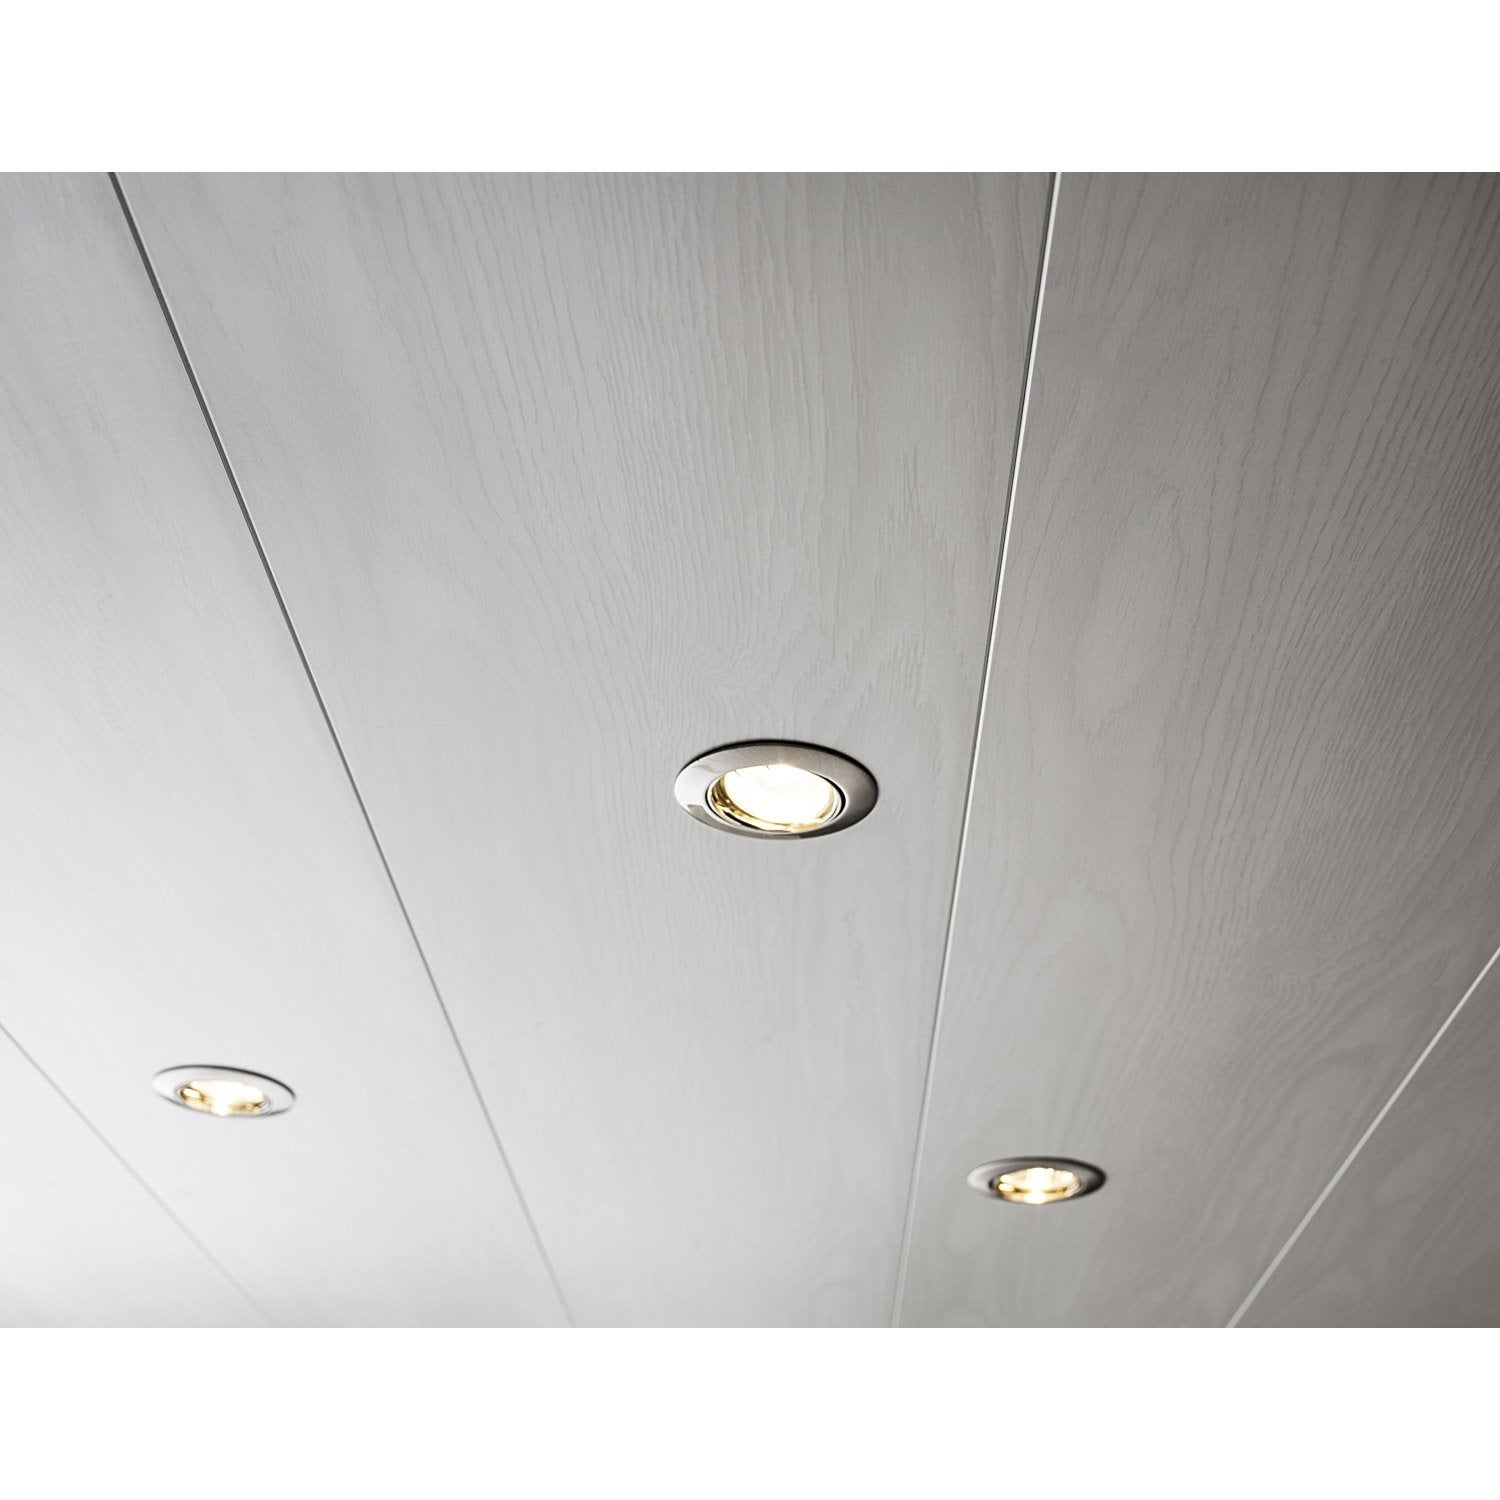 Lambris pvc blanc artens x cm x mm for Plafond en pvc blanc